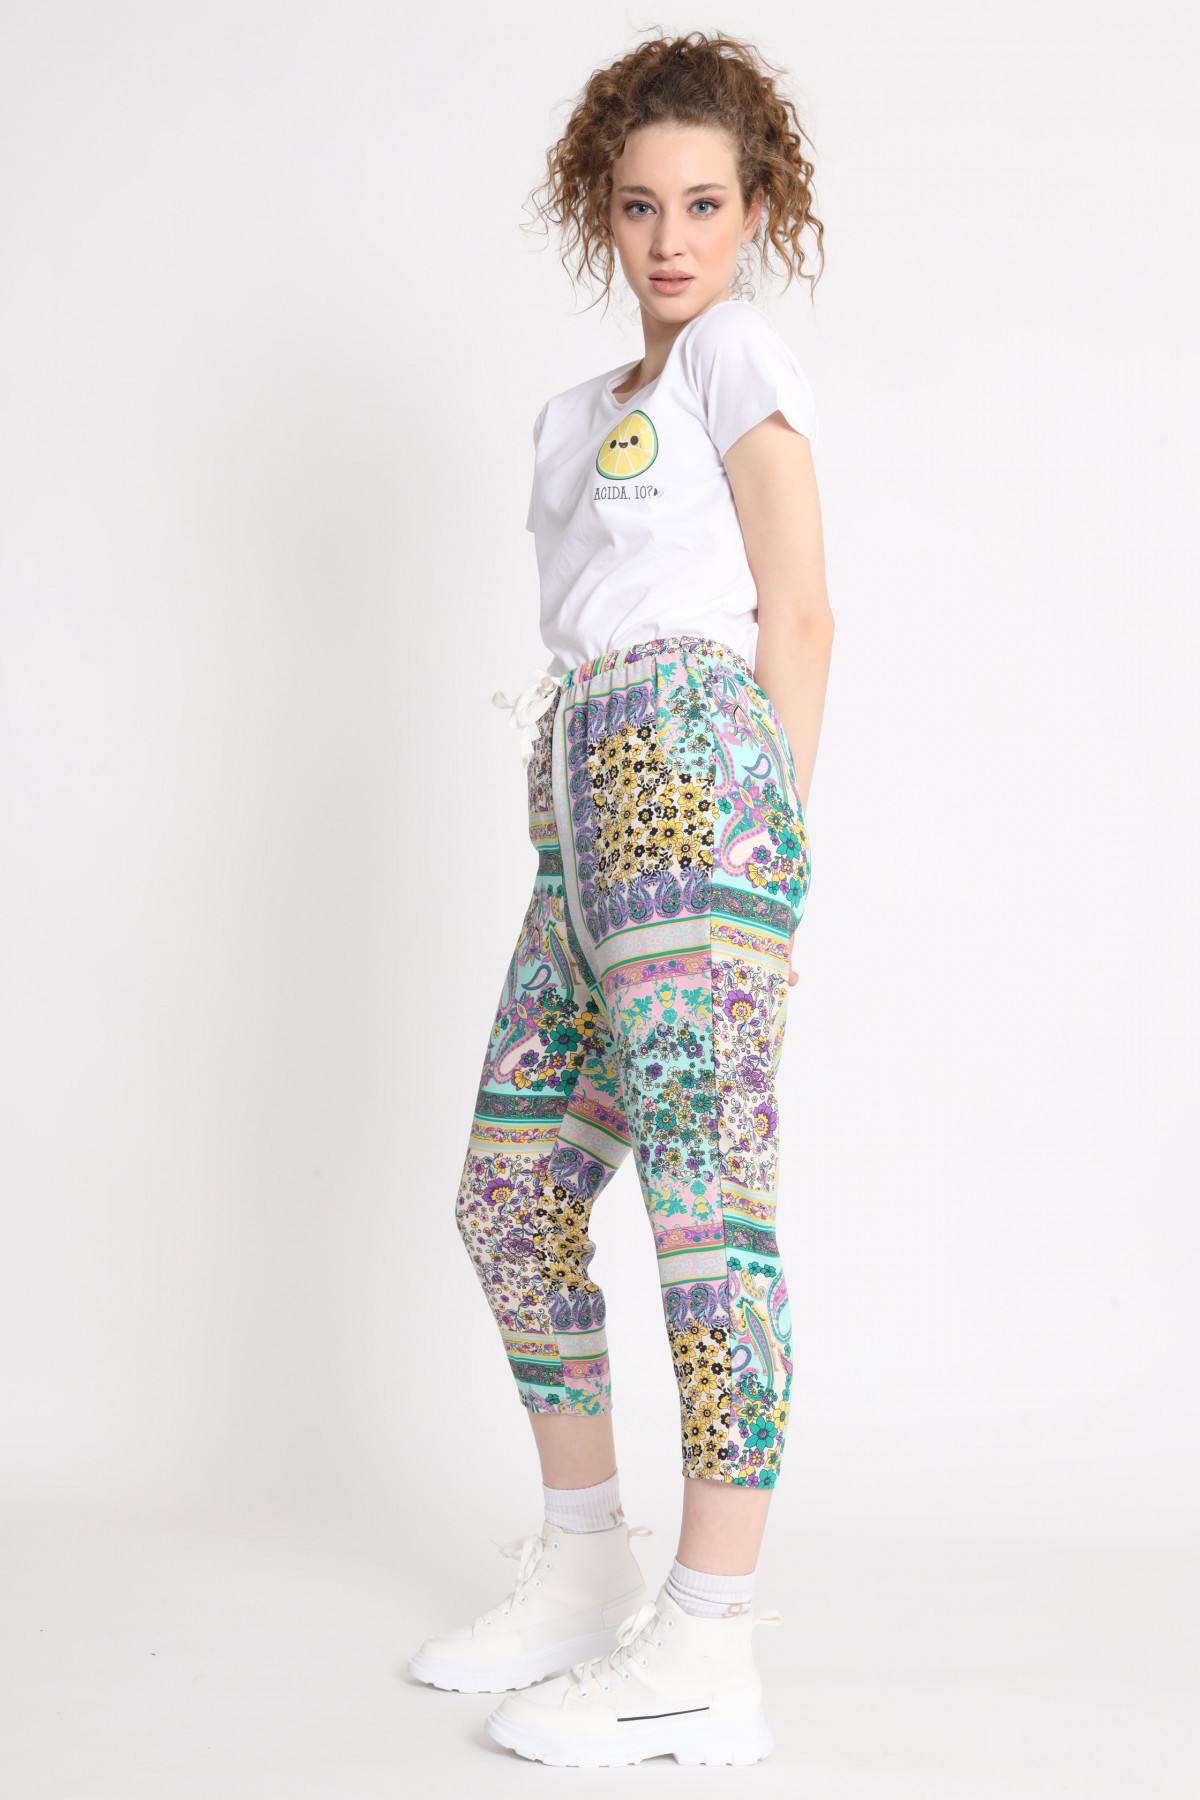 Cashmere and Flowers Patterned Drawstring Trousers